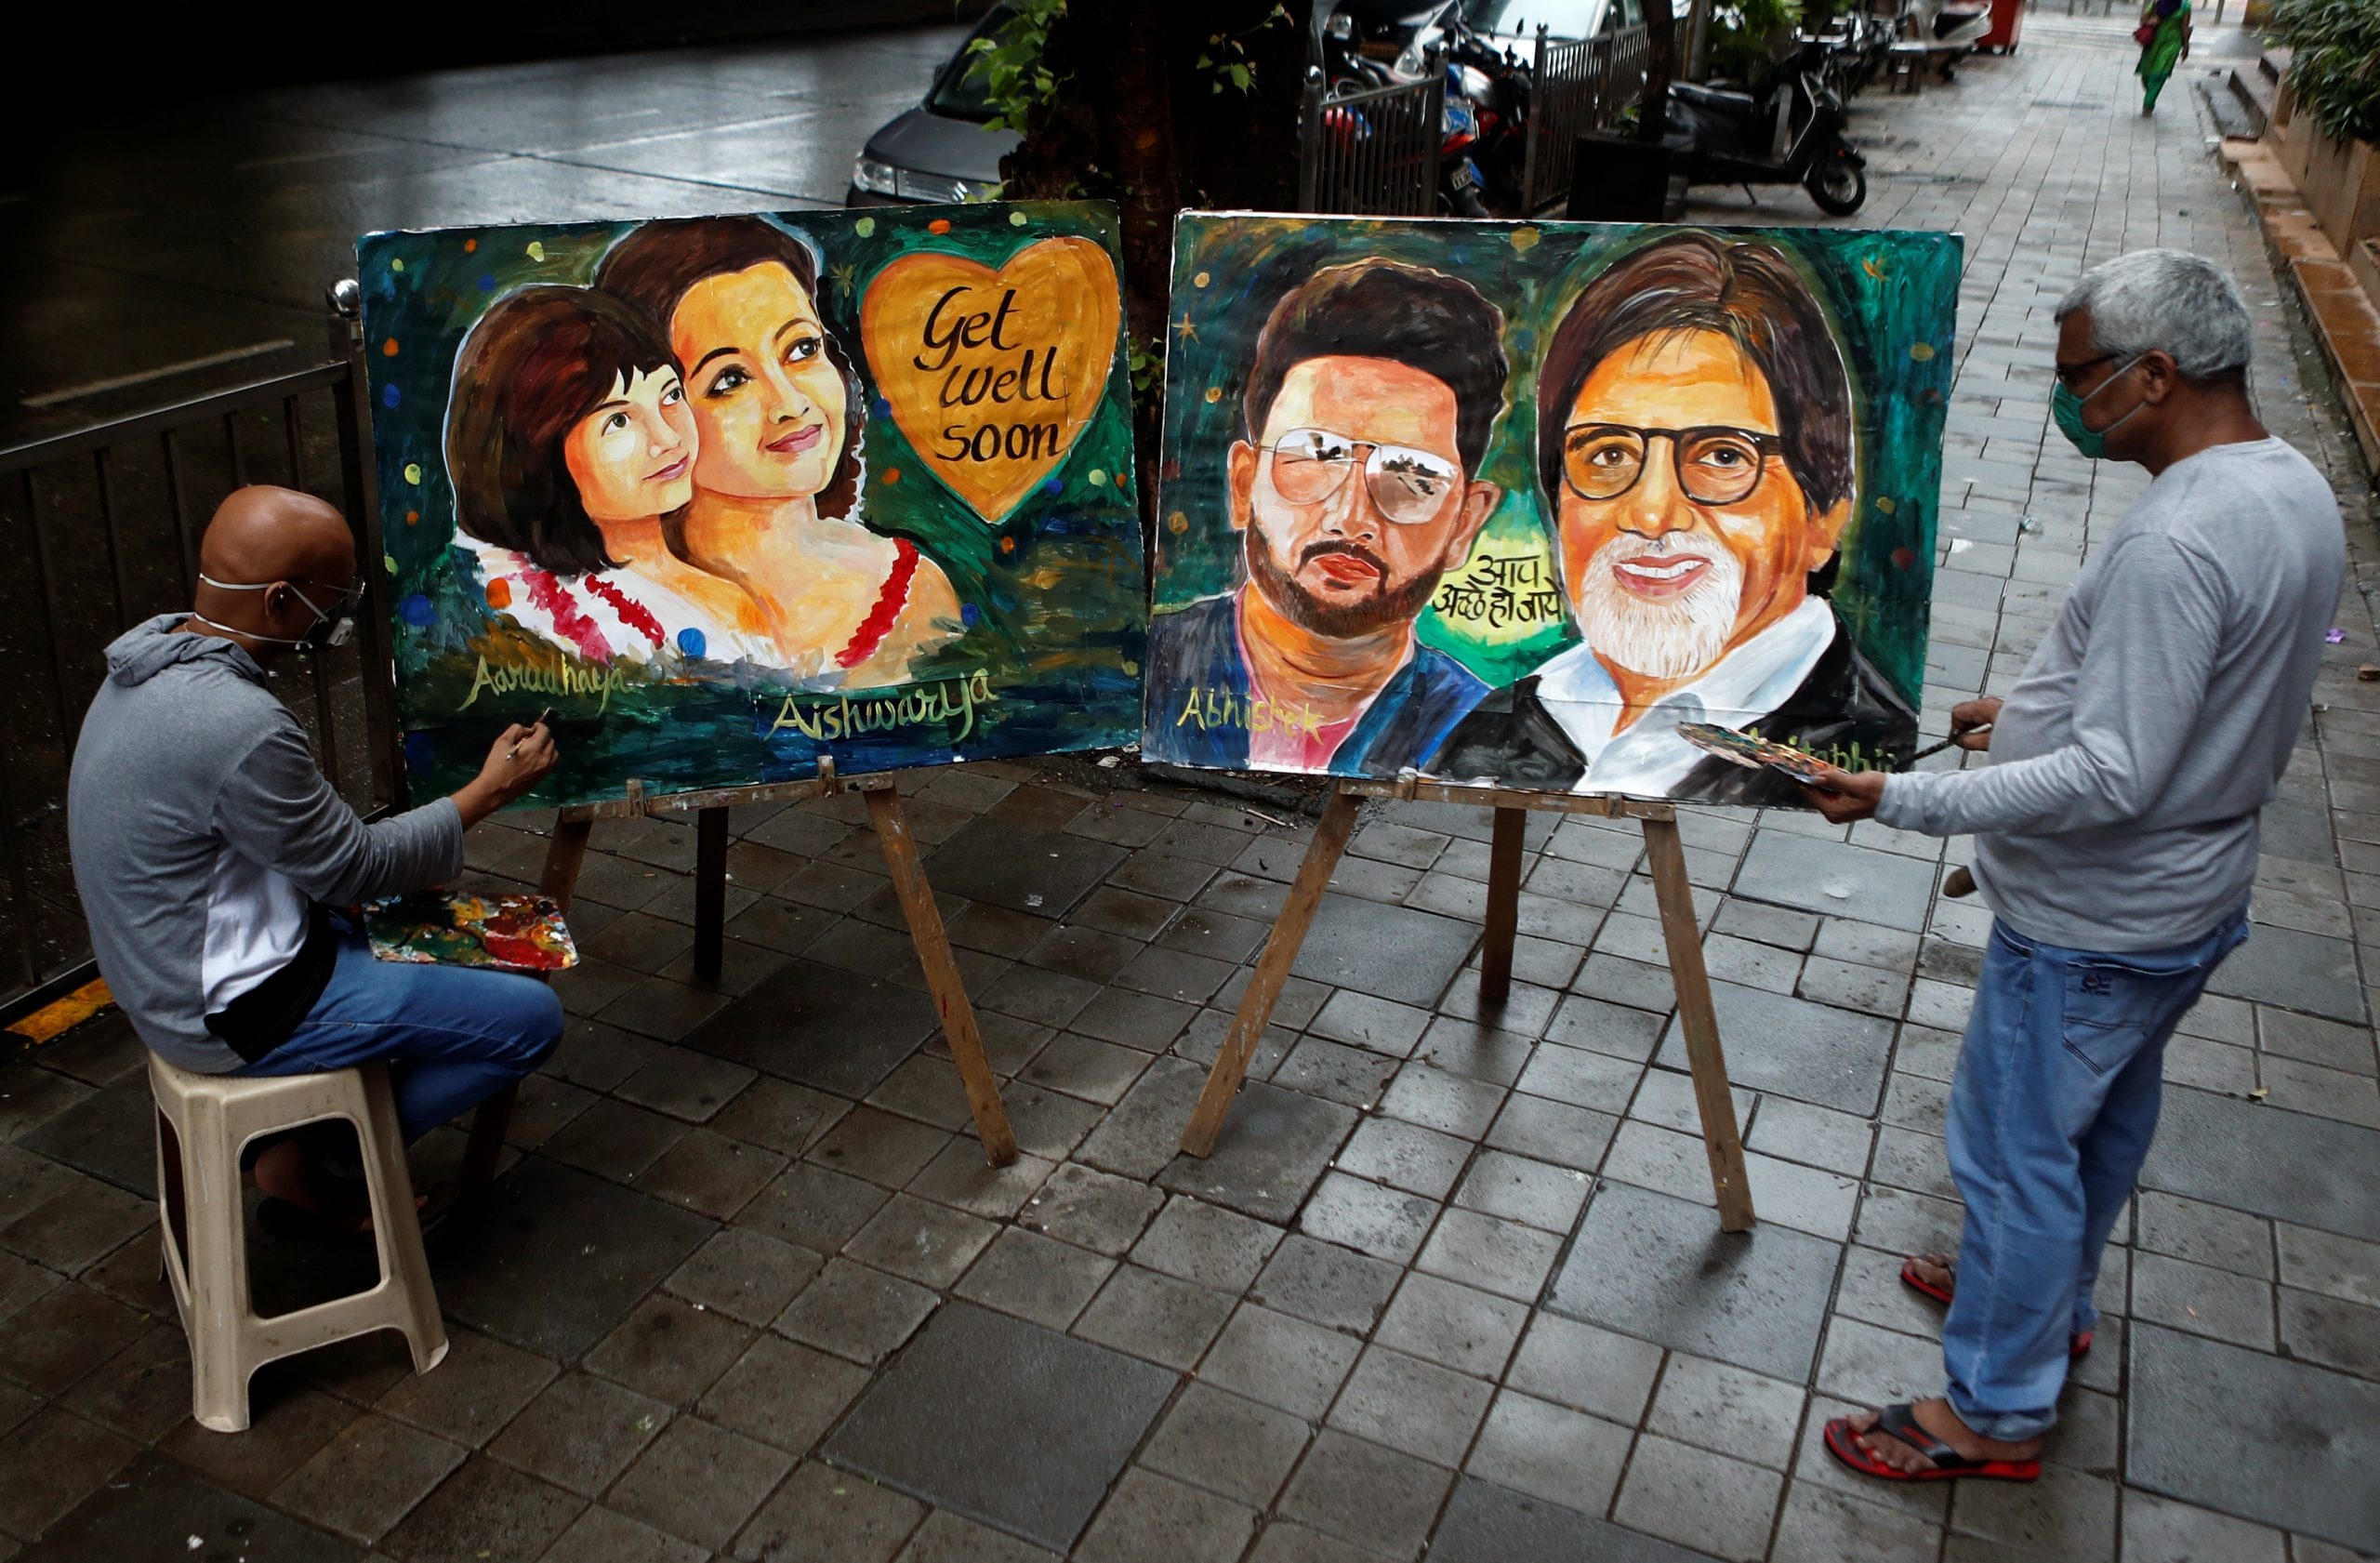 Artists create paintings depicting Bollywood actor Amitabh Bachchan, his son Abhishek Bachchan, his daughter-in-law Aishwarya Rai Bachchan and his granddaughter Aaradhya, after they tested positive for the coronavirus disease (COVID-19), in Mumbai, India, July 13, 2020. REUTERS/Francis Mascarenhas NO RESALES. NO ARCHIVES